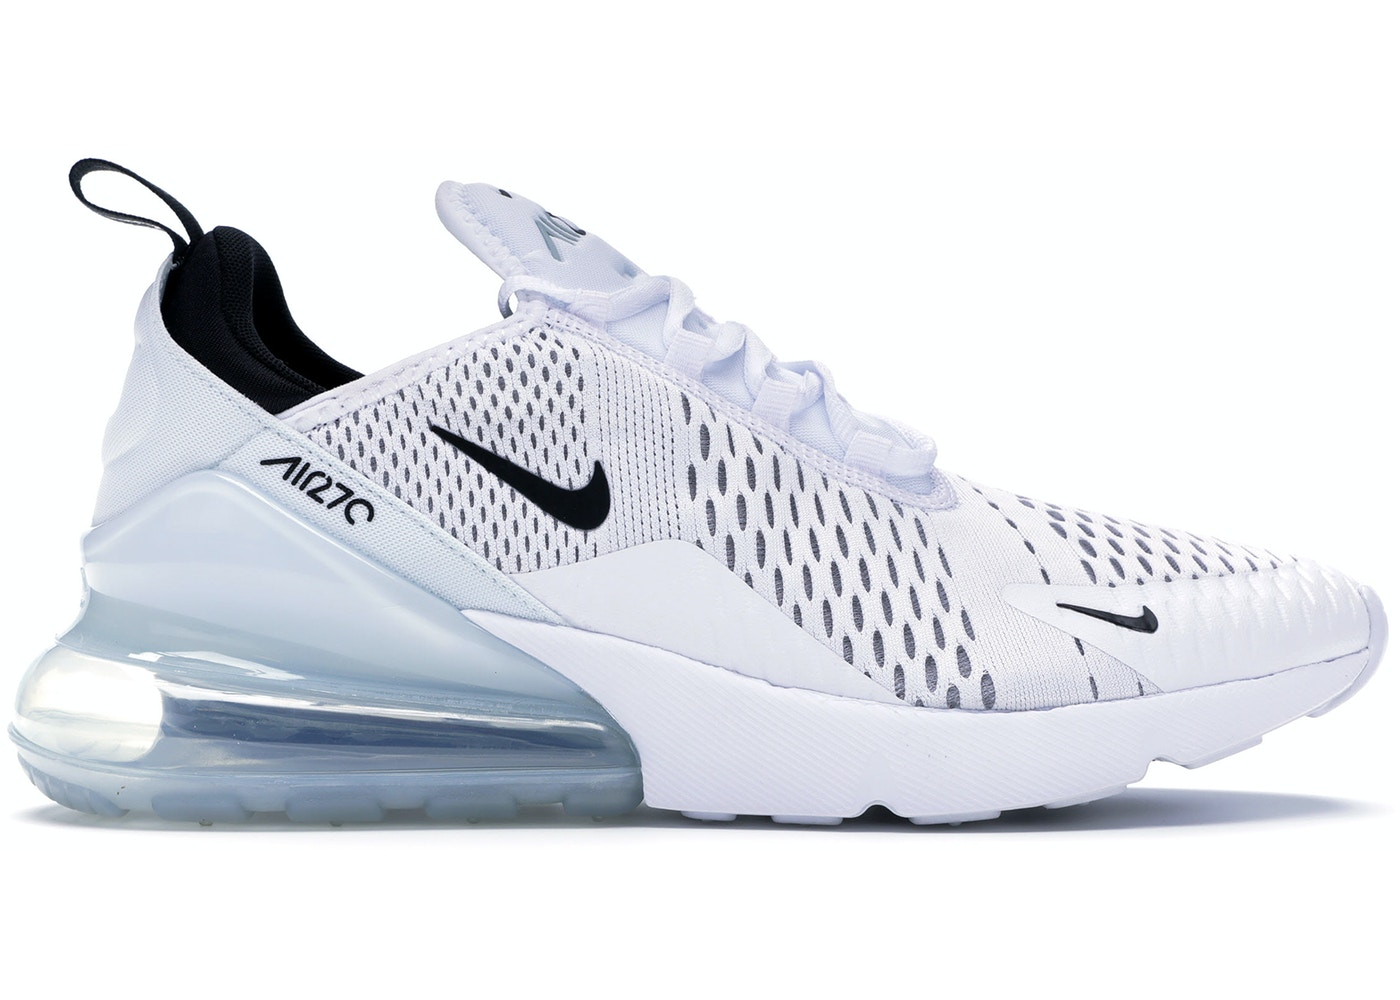 Nike Air Max 270 White Black Ah8050 100